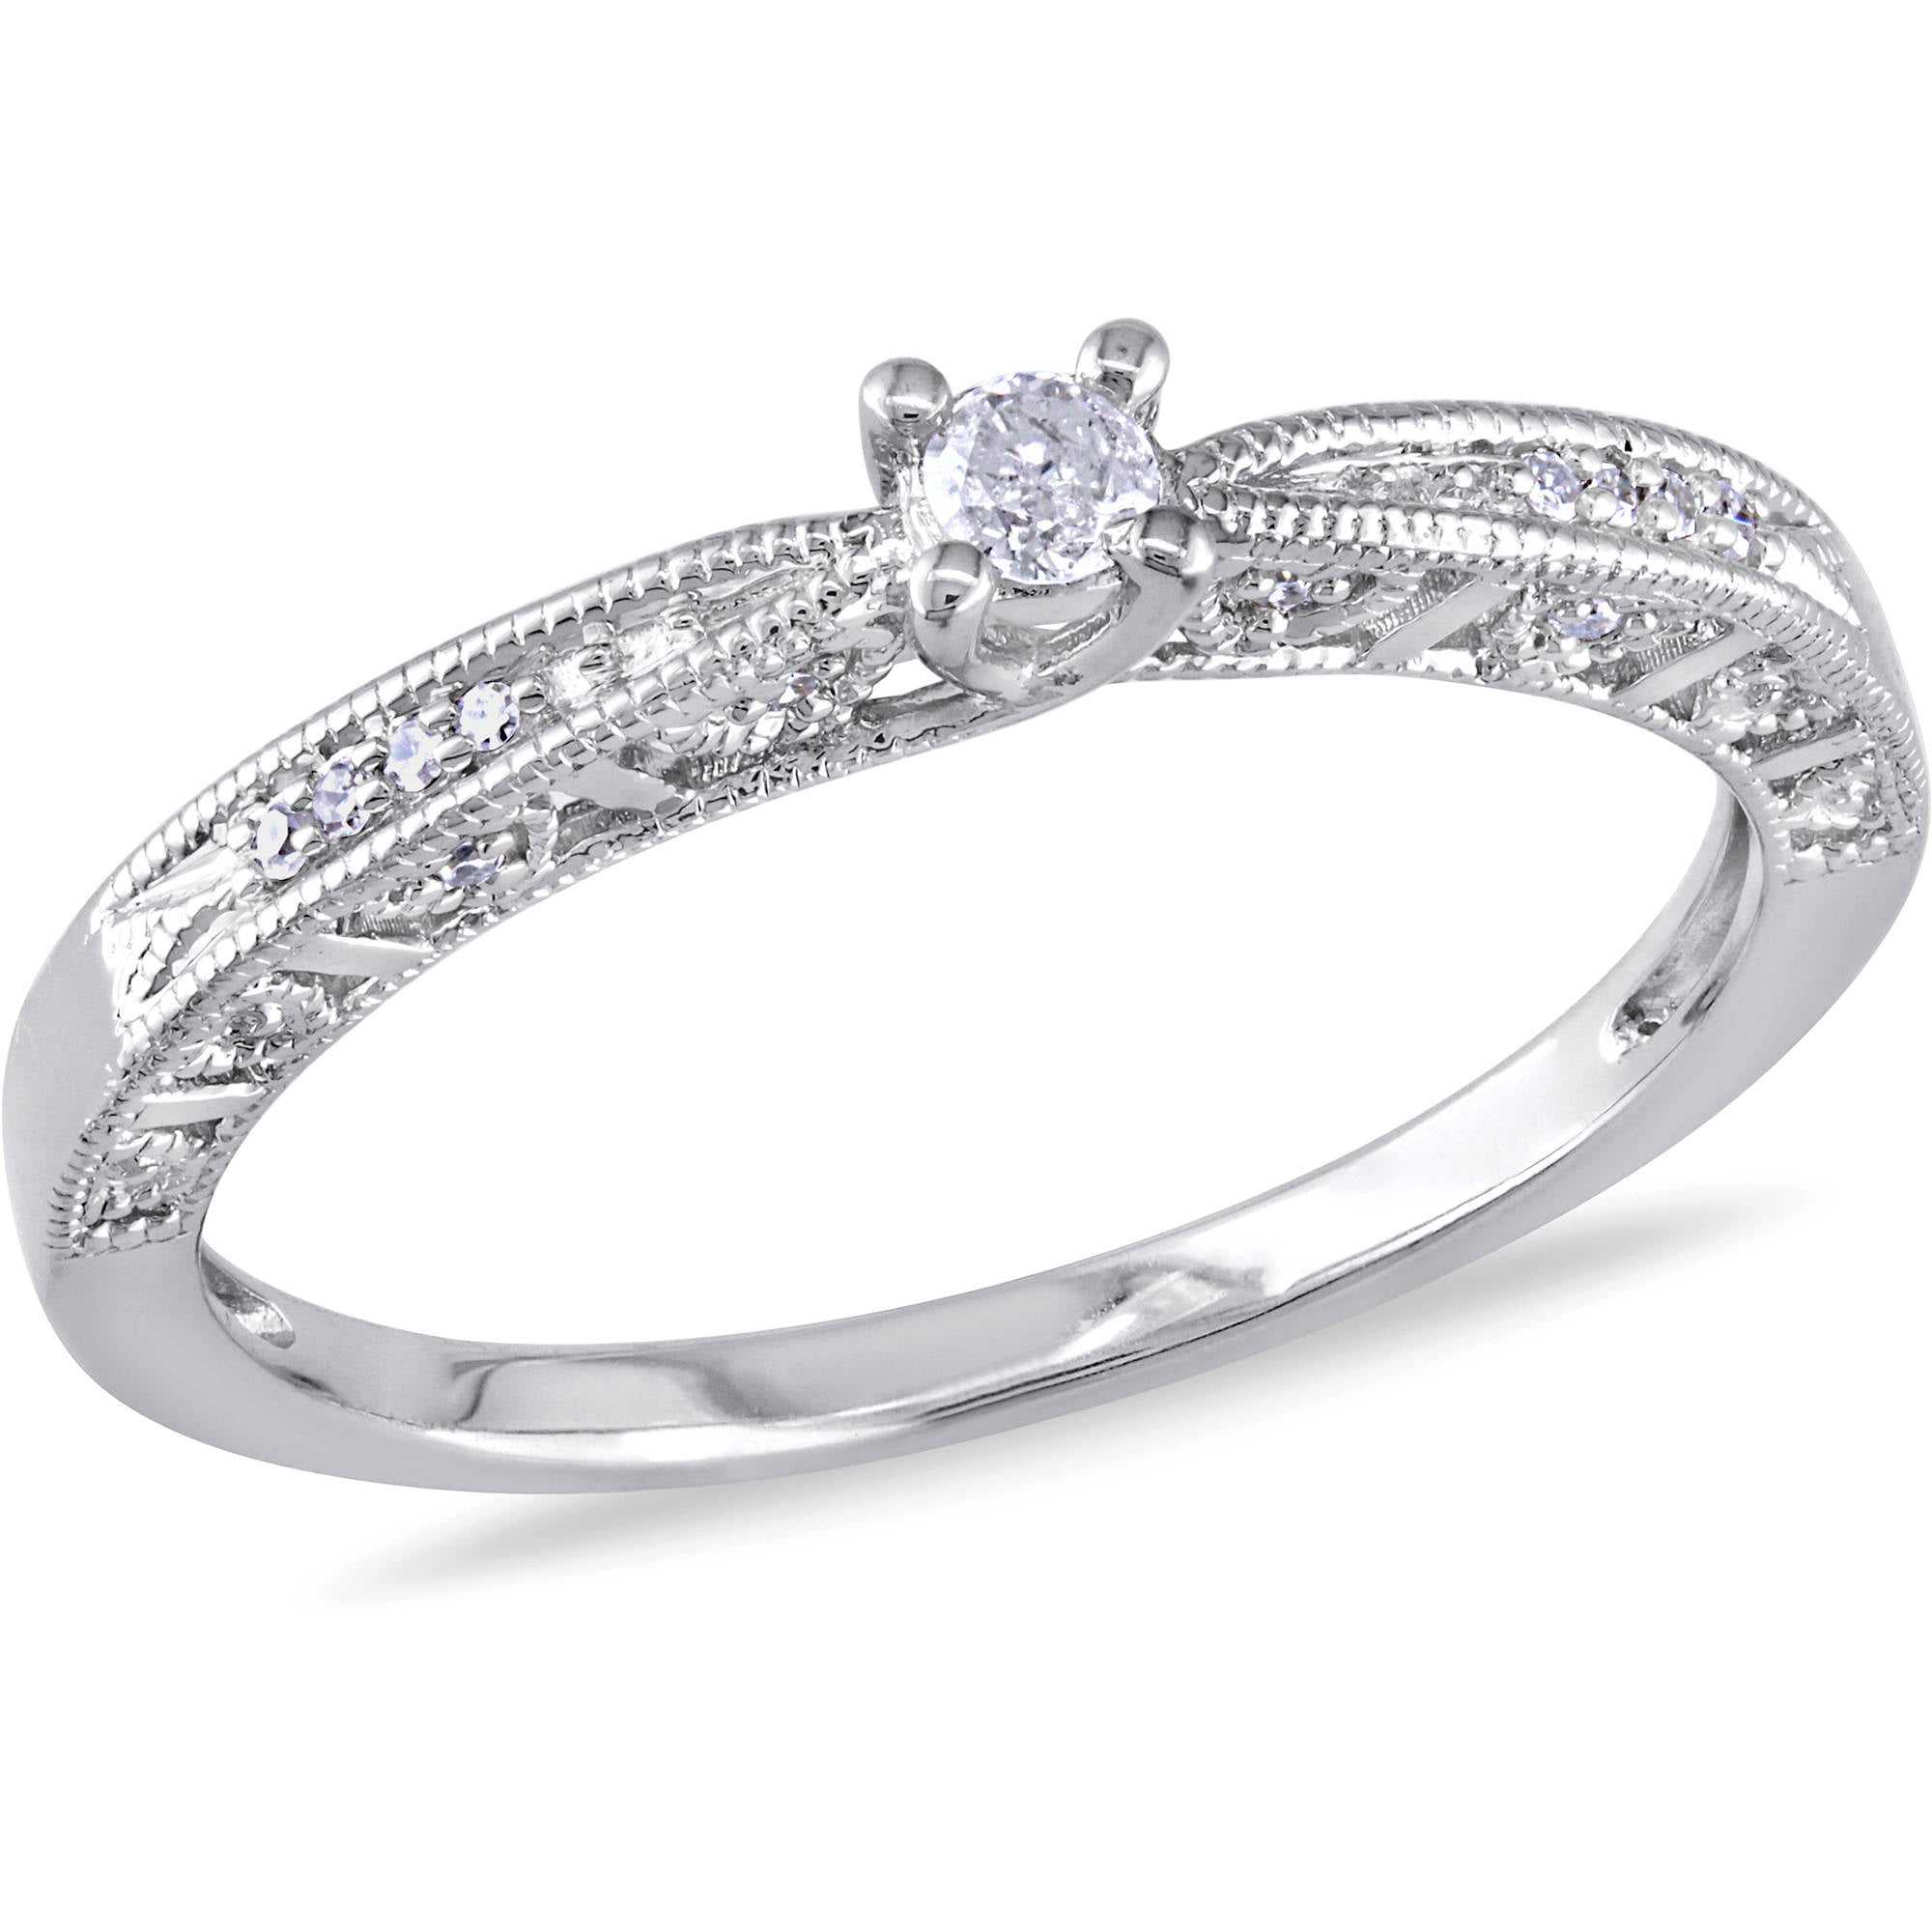 be adrienne gallery large rings is bailon inspired diamond oval by wedding her engaged engagement ring